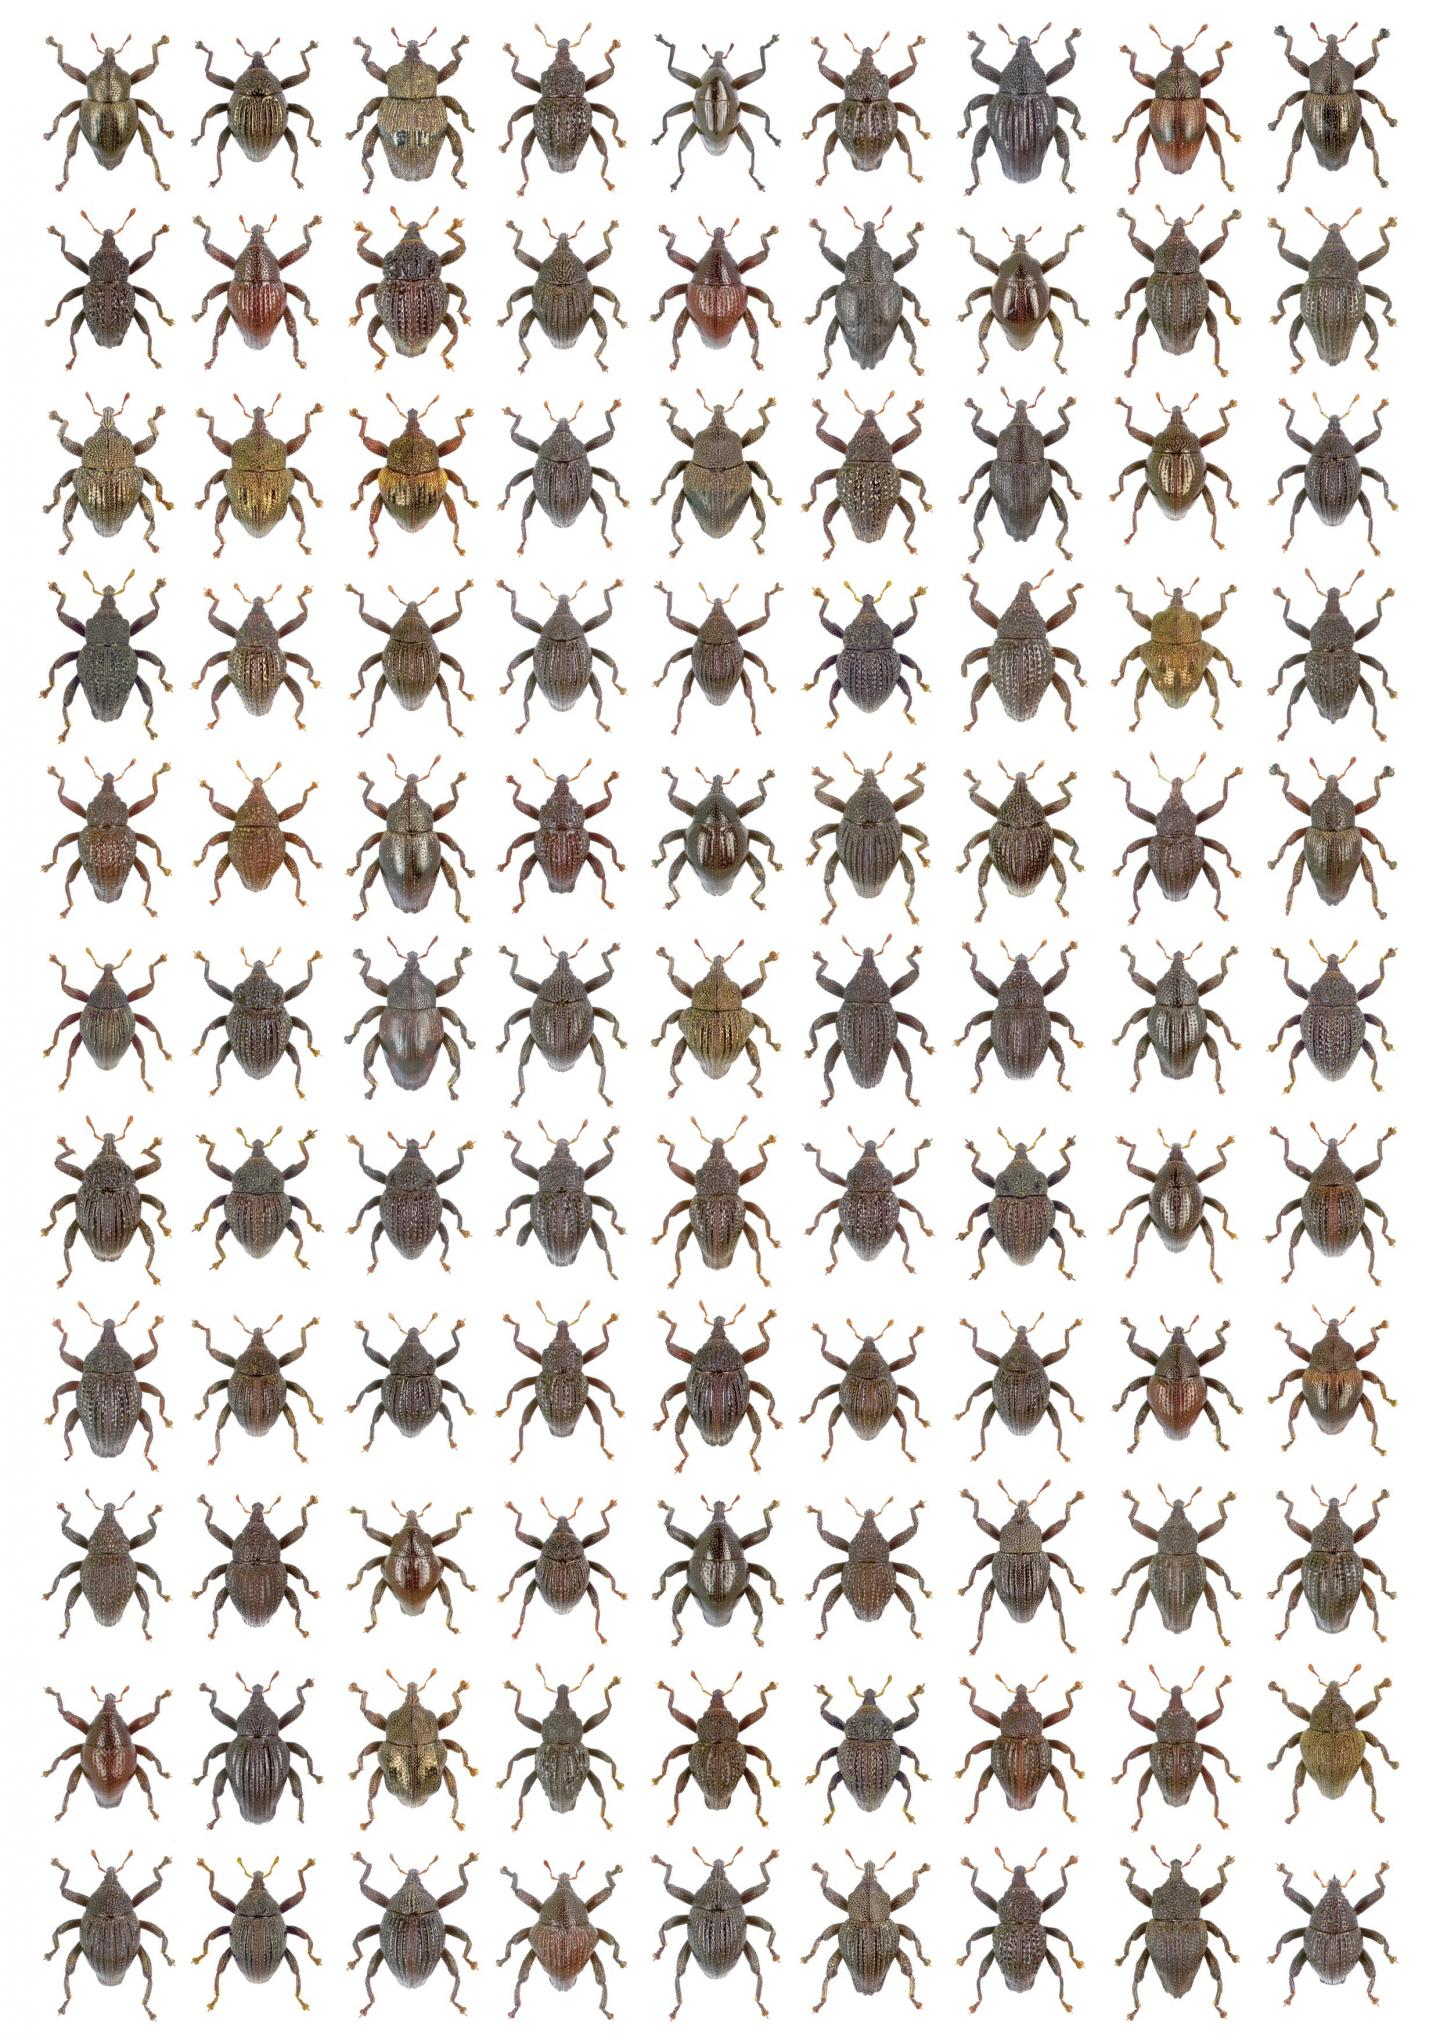 These are the 98 new species of Trigonopterus plus T. amphoralis (row 1, 7th from left), a species lost since 1922.